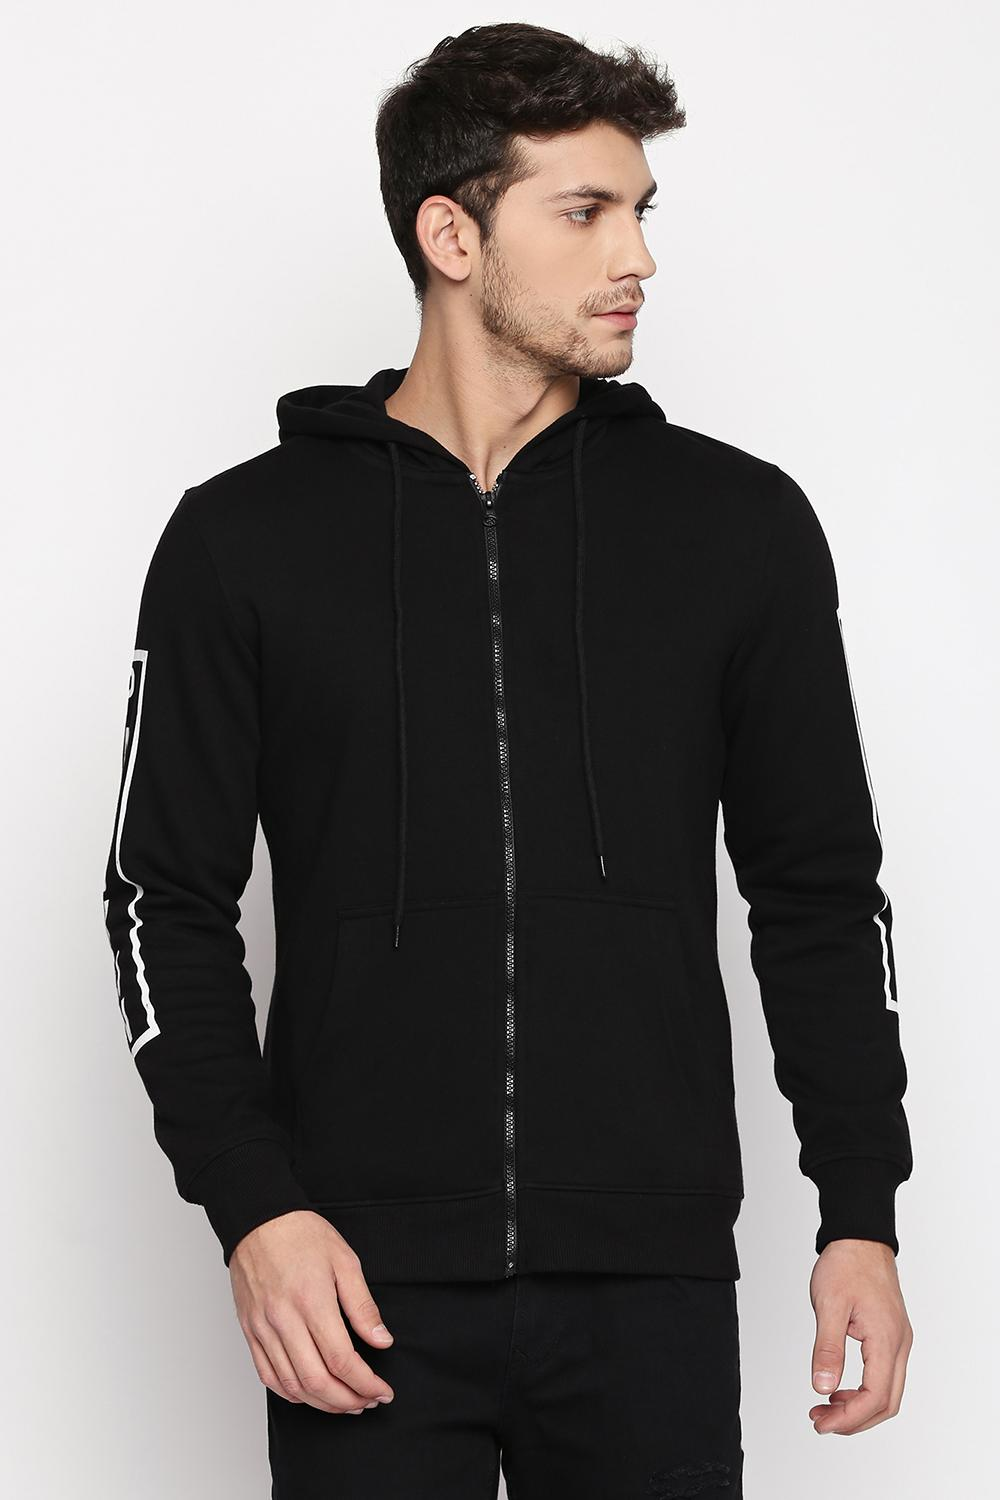 1bcbe993 Shop Sweatshirts for Men Online in India at Pantaloons Online Store